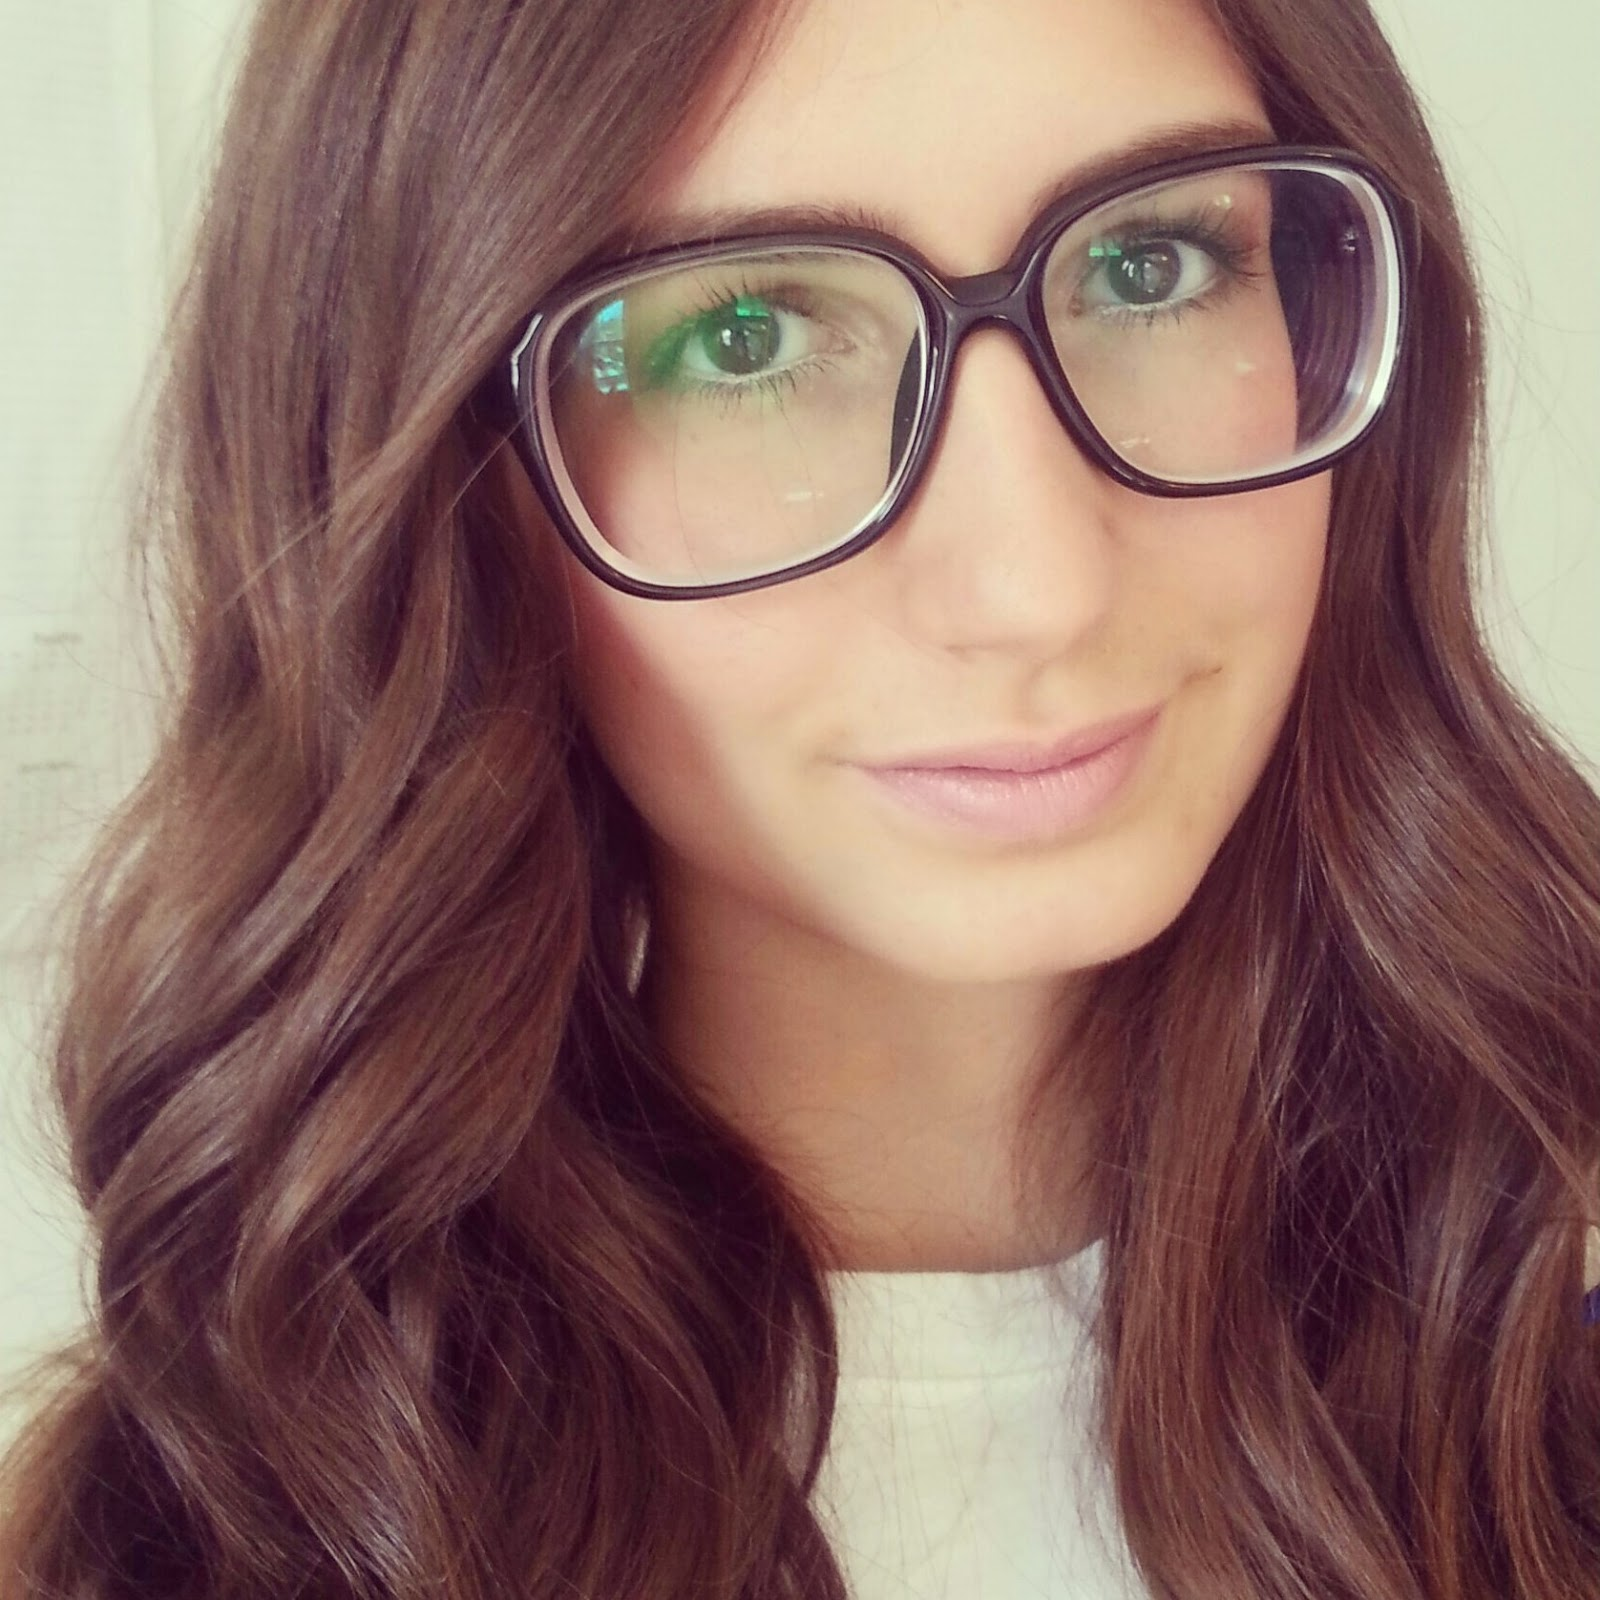 Catherine Belle: FIRMOO GLASSES